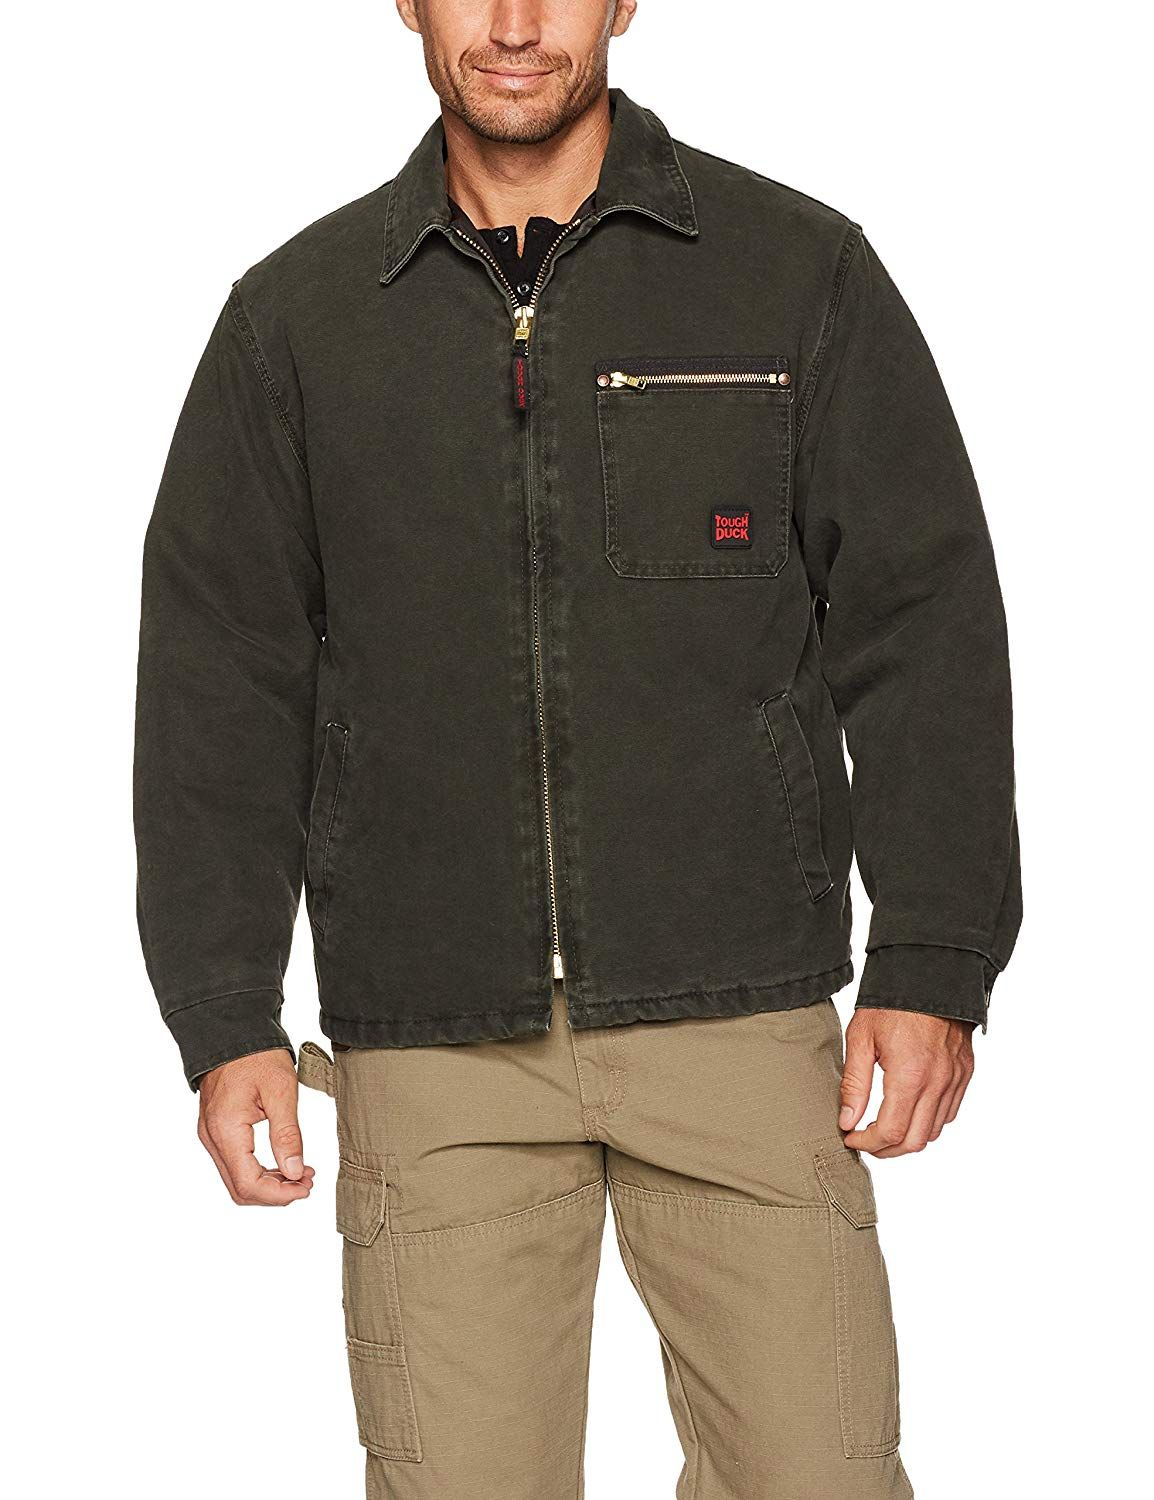 Tough Duck Washed Chore Jacket Chore jacket, Brown